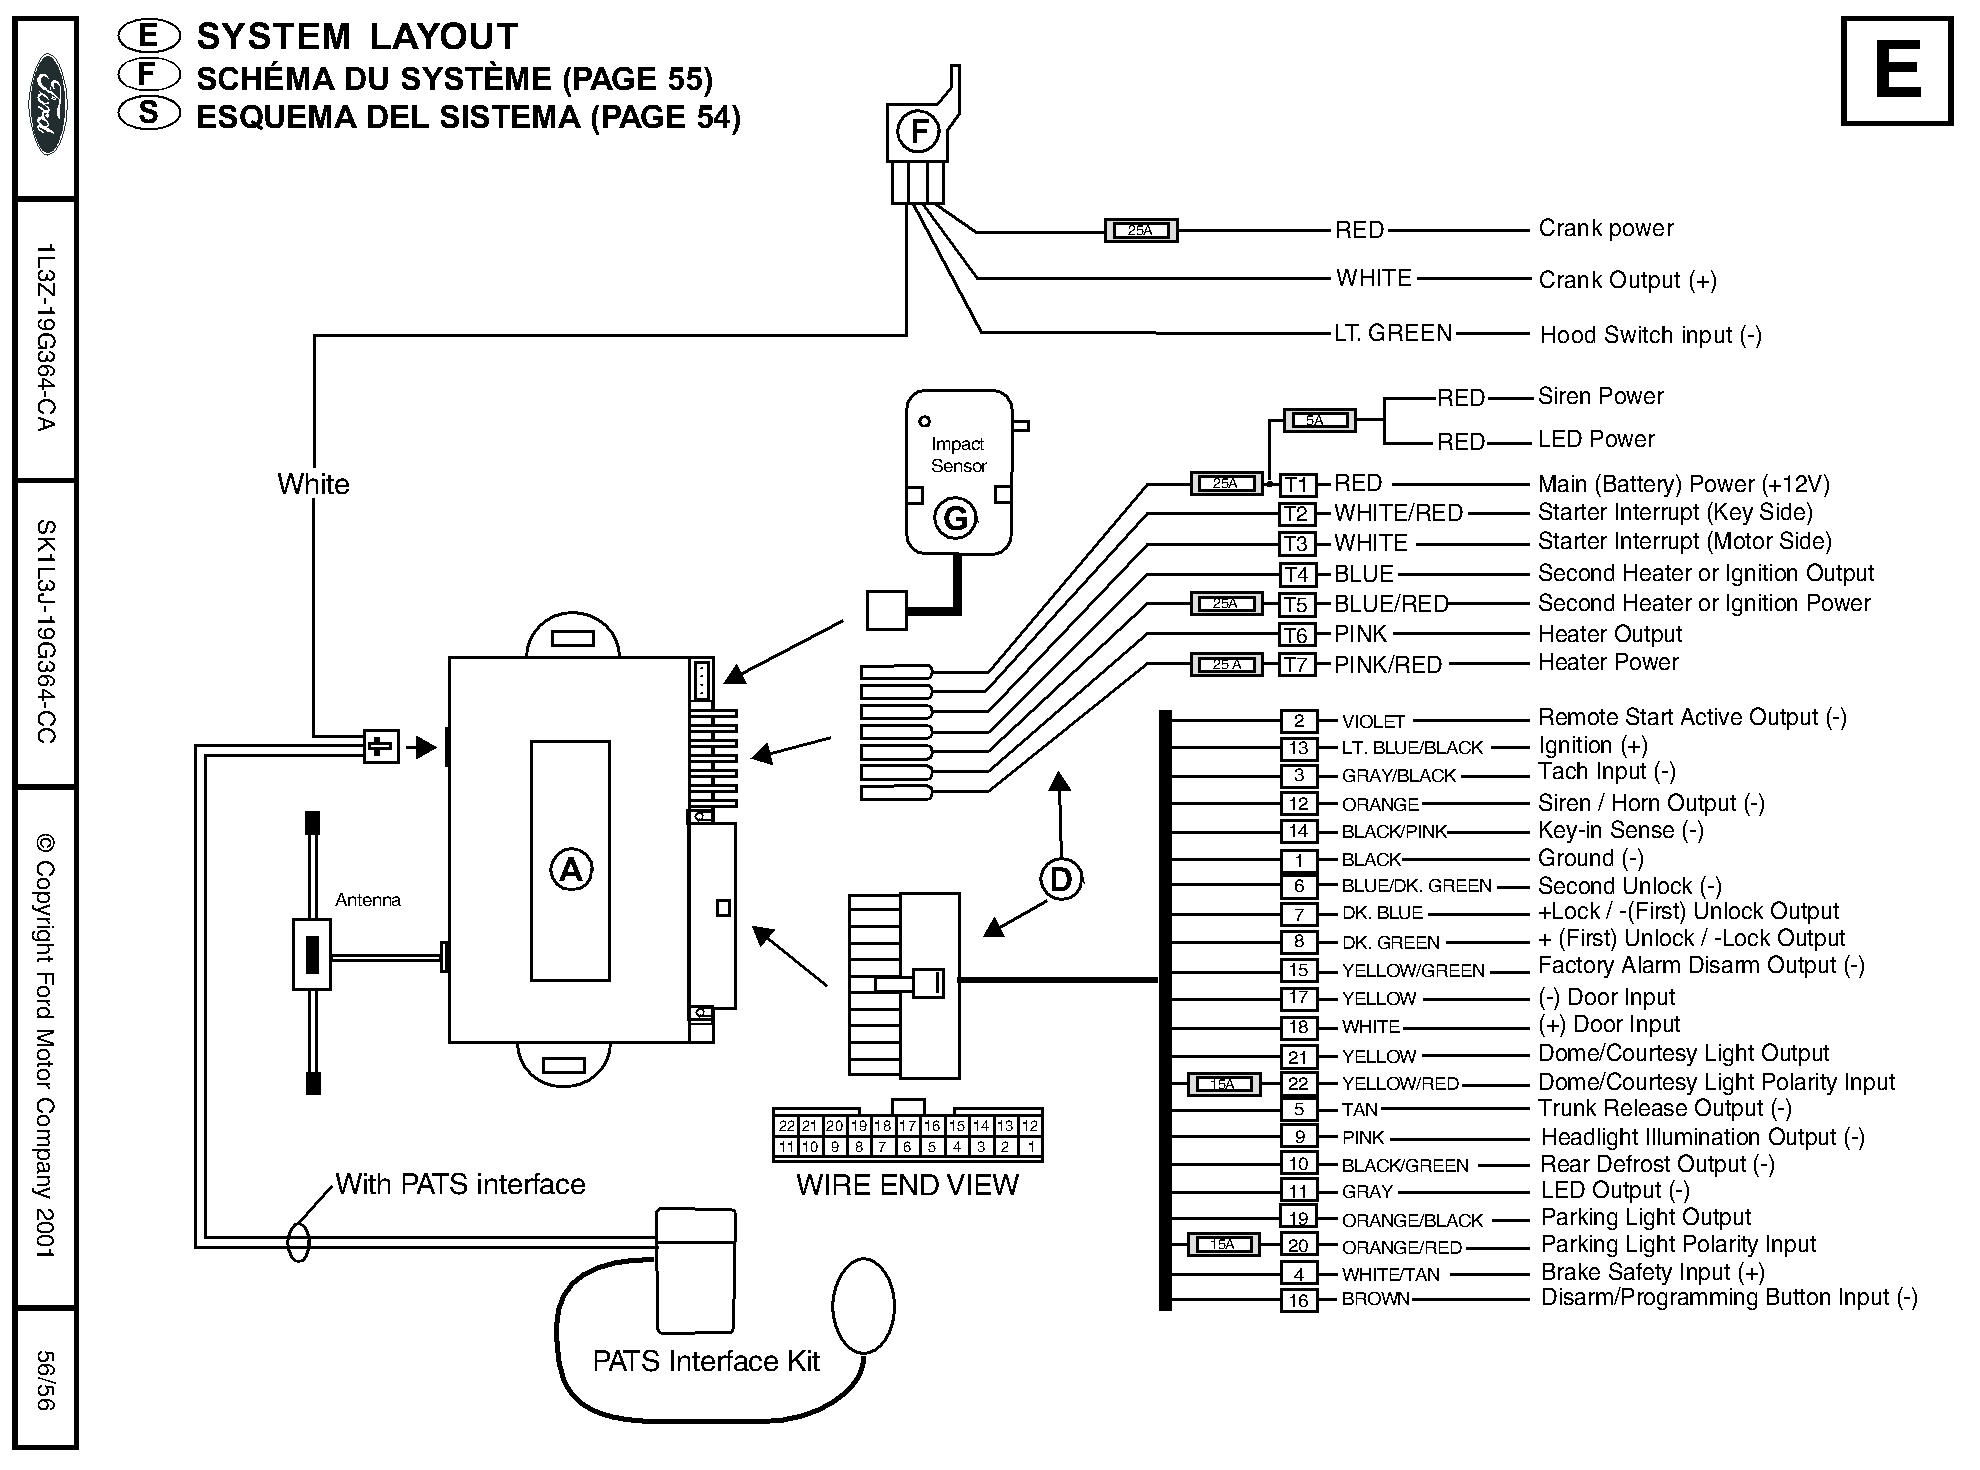 Wiring Diagram Arctic Cat Z440 likewise Taotao Ata 110 Wiring Diagram as well Us Super Carriers as well Pantera Parts Catalog additionally Arctic Cat Atv Parts Diagram. on arctic cat panther wiring diagram